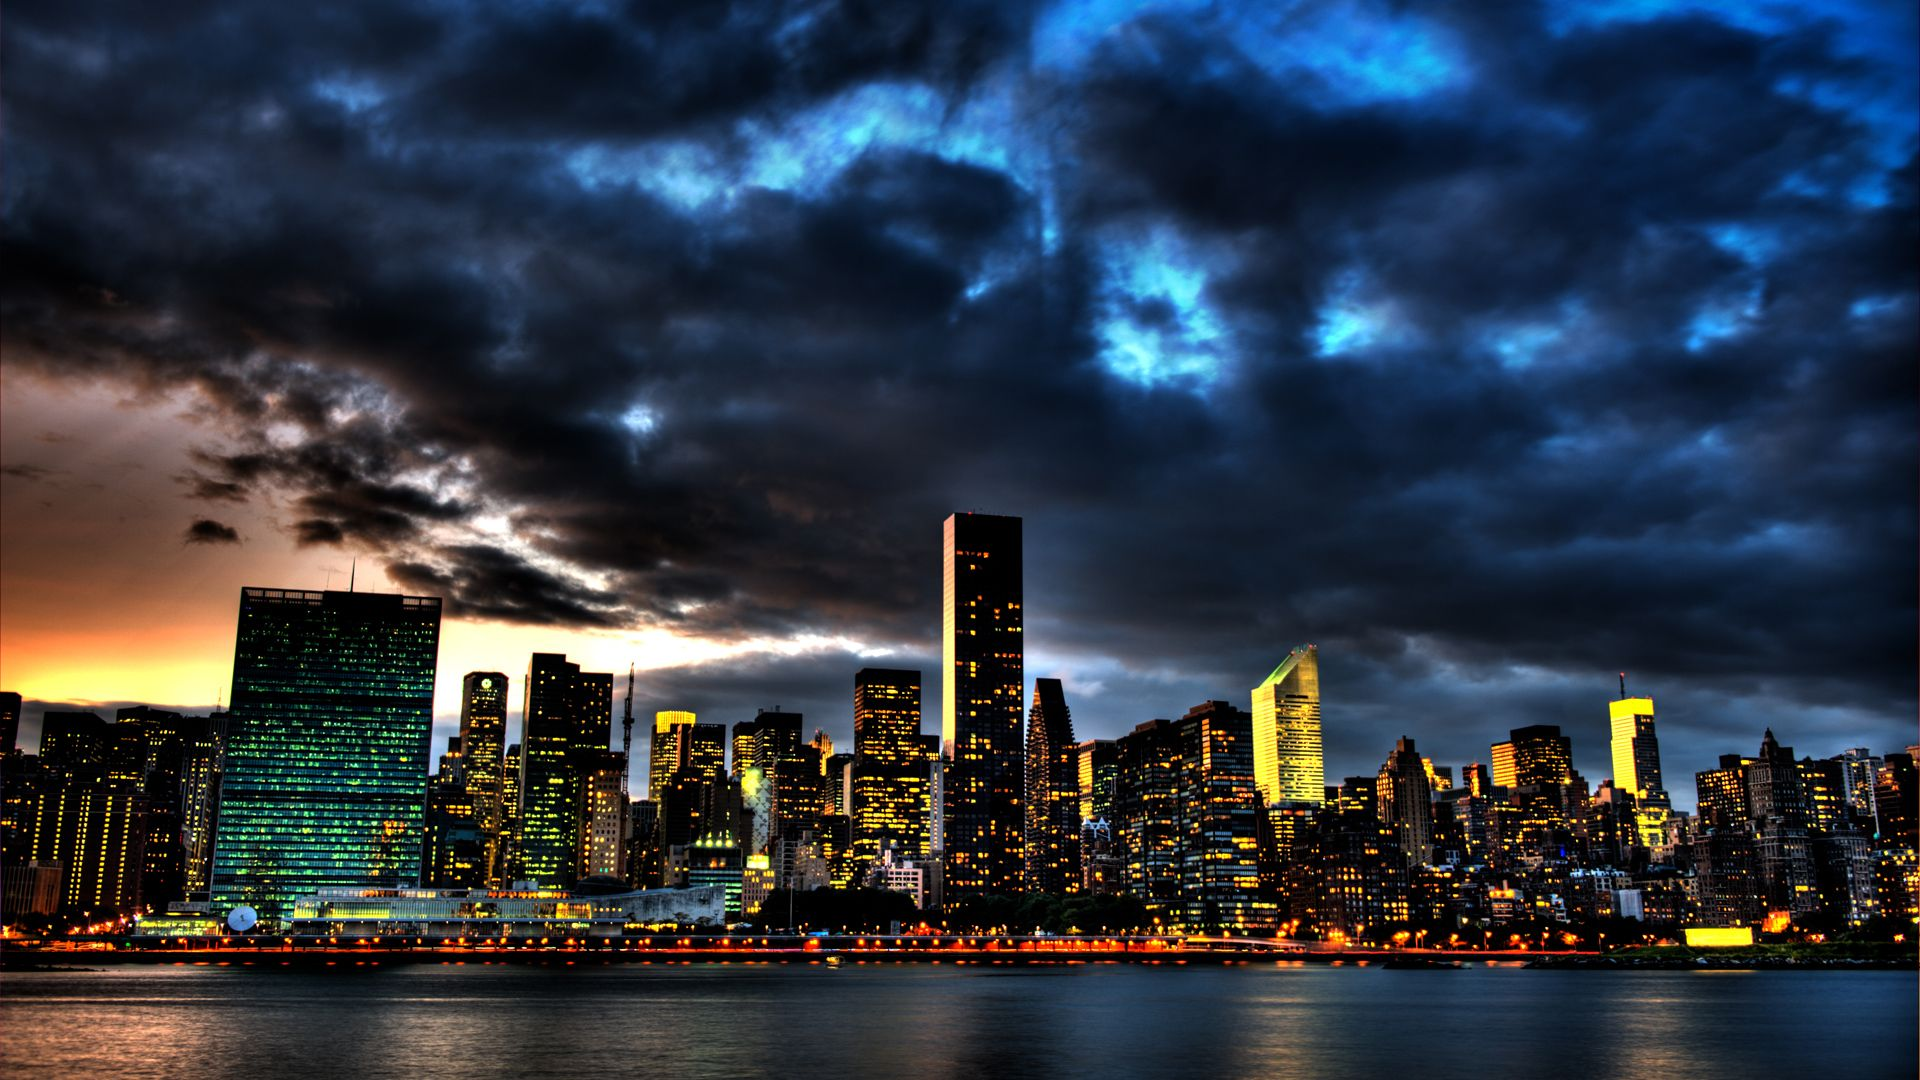 Dark City Hd Wallpaper New York Wallpaper New York Night City Wallpaper